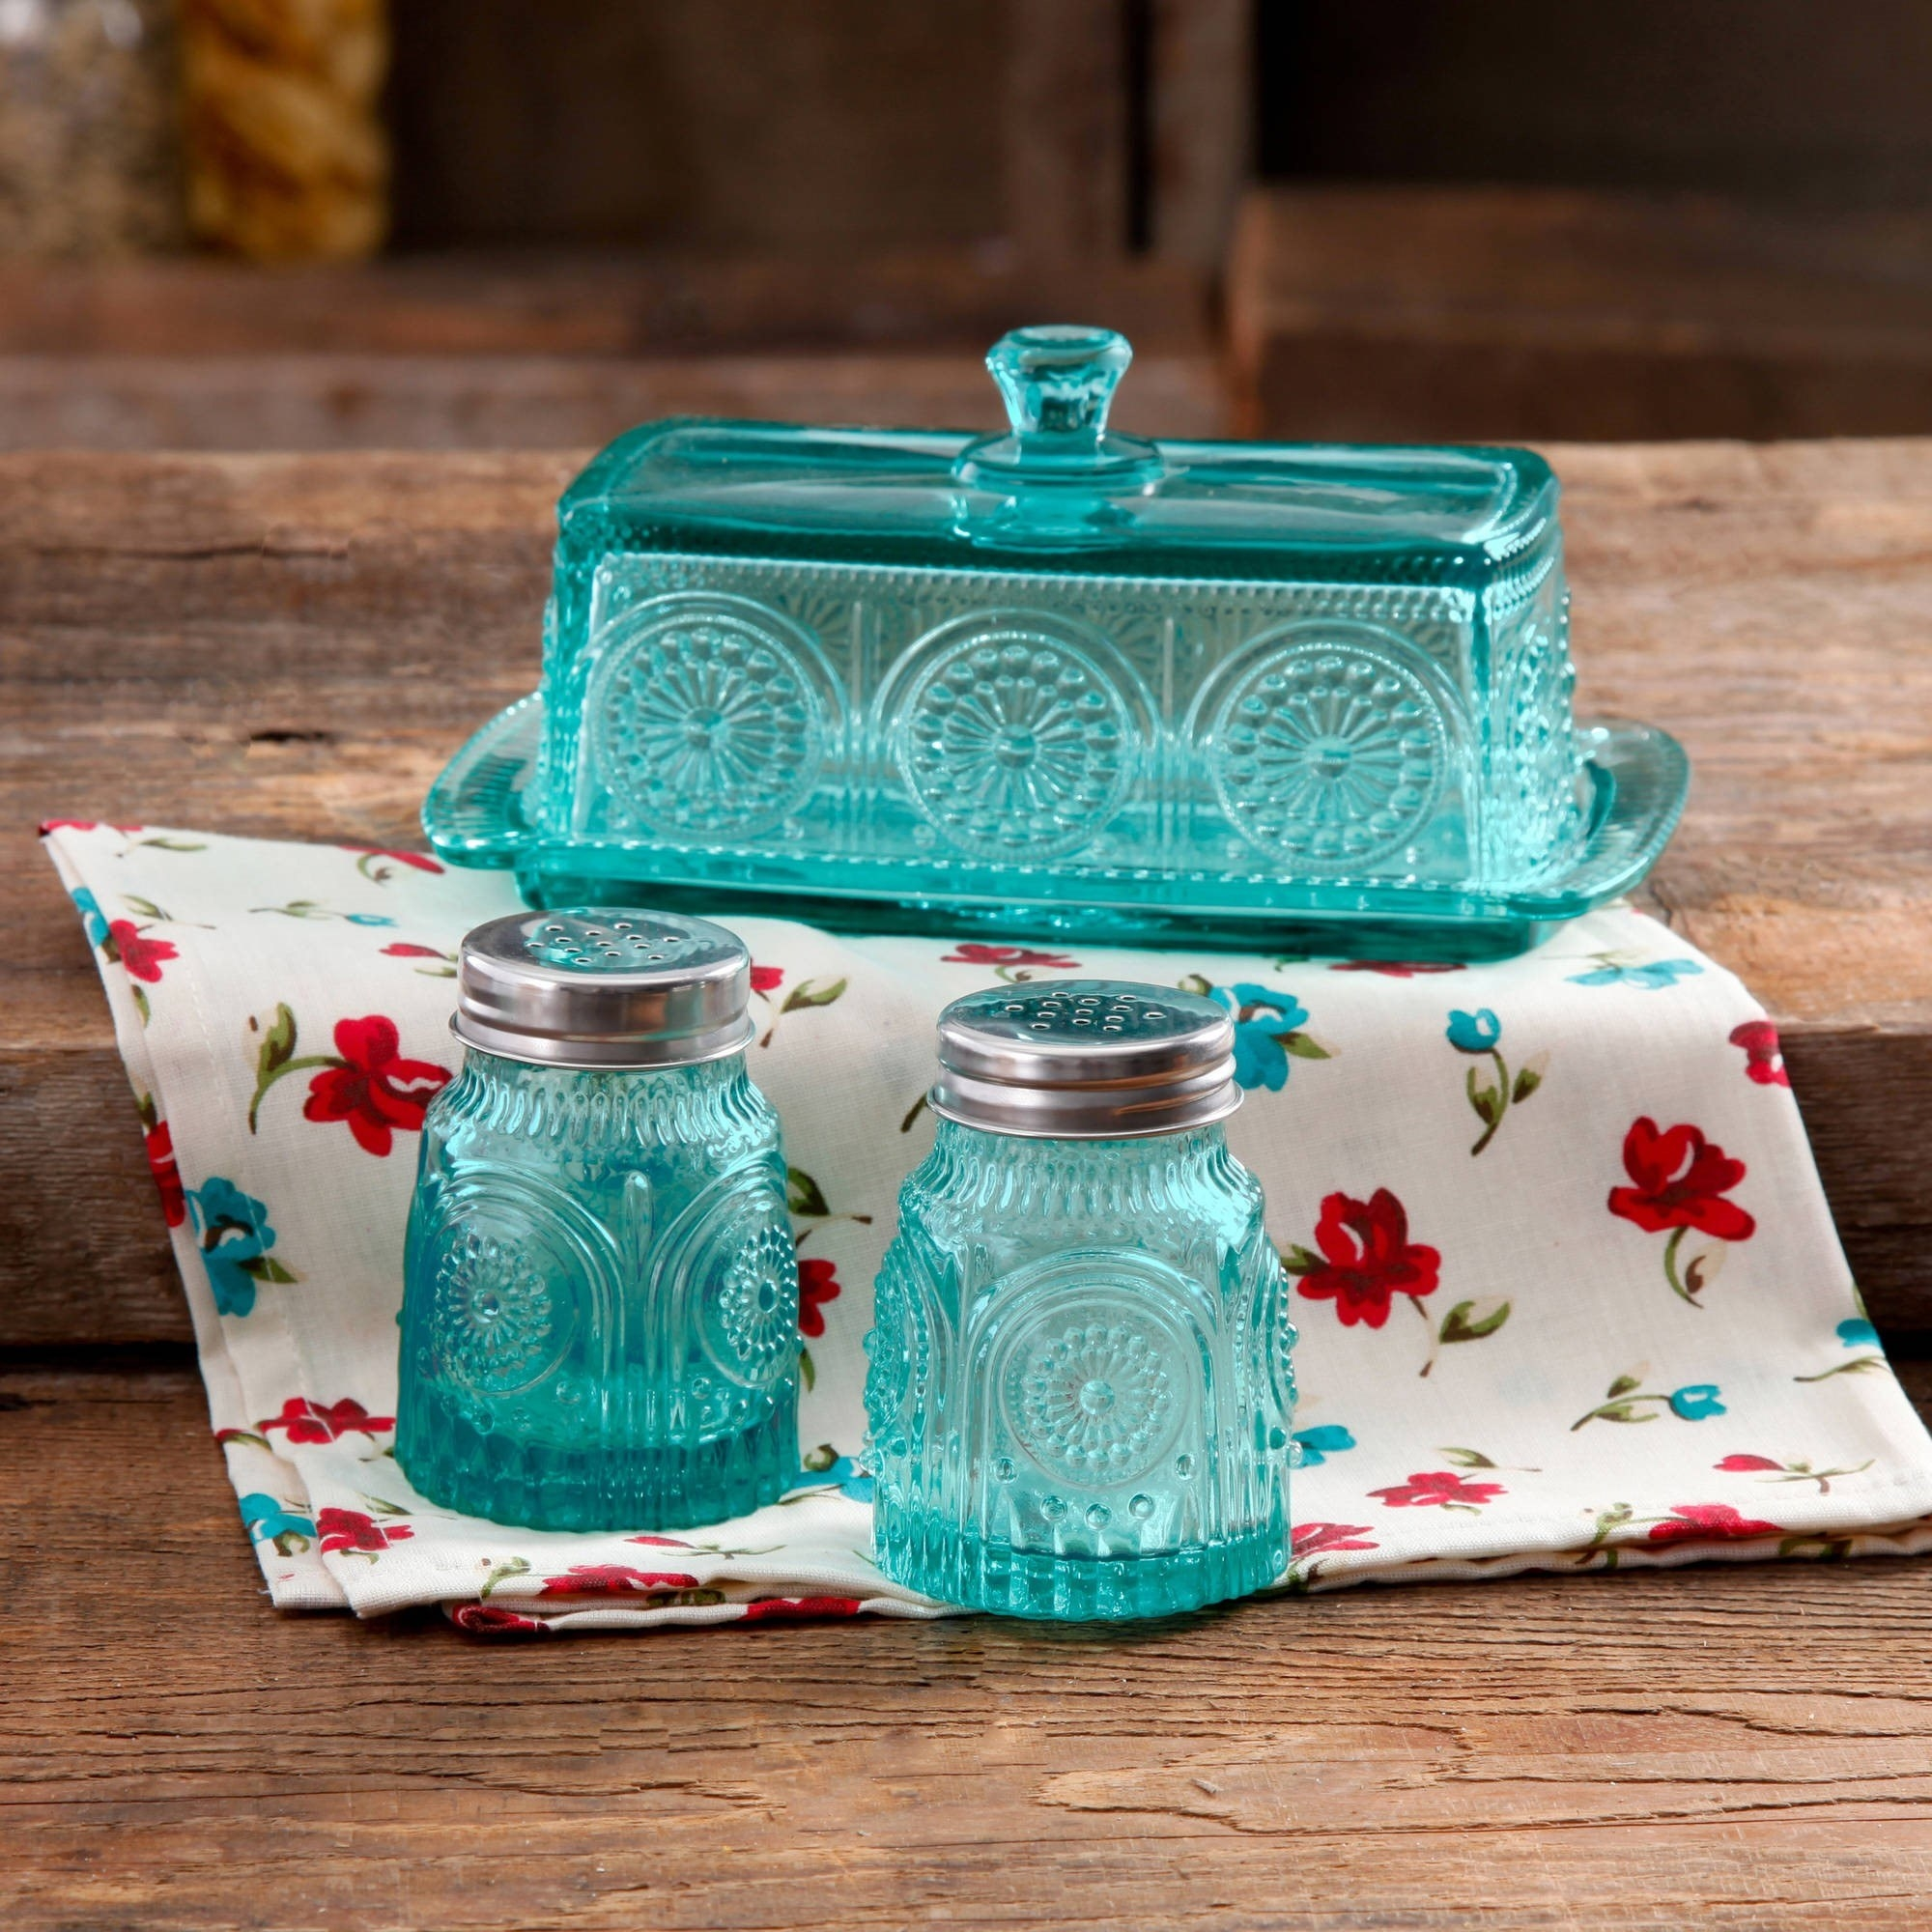 The turquoise glass butter dish, salt and pepper shaker set